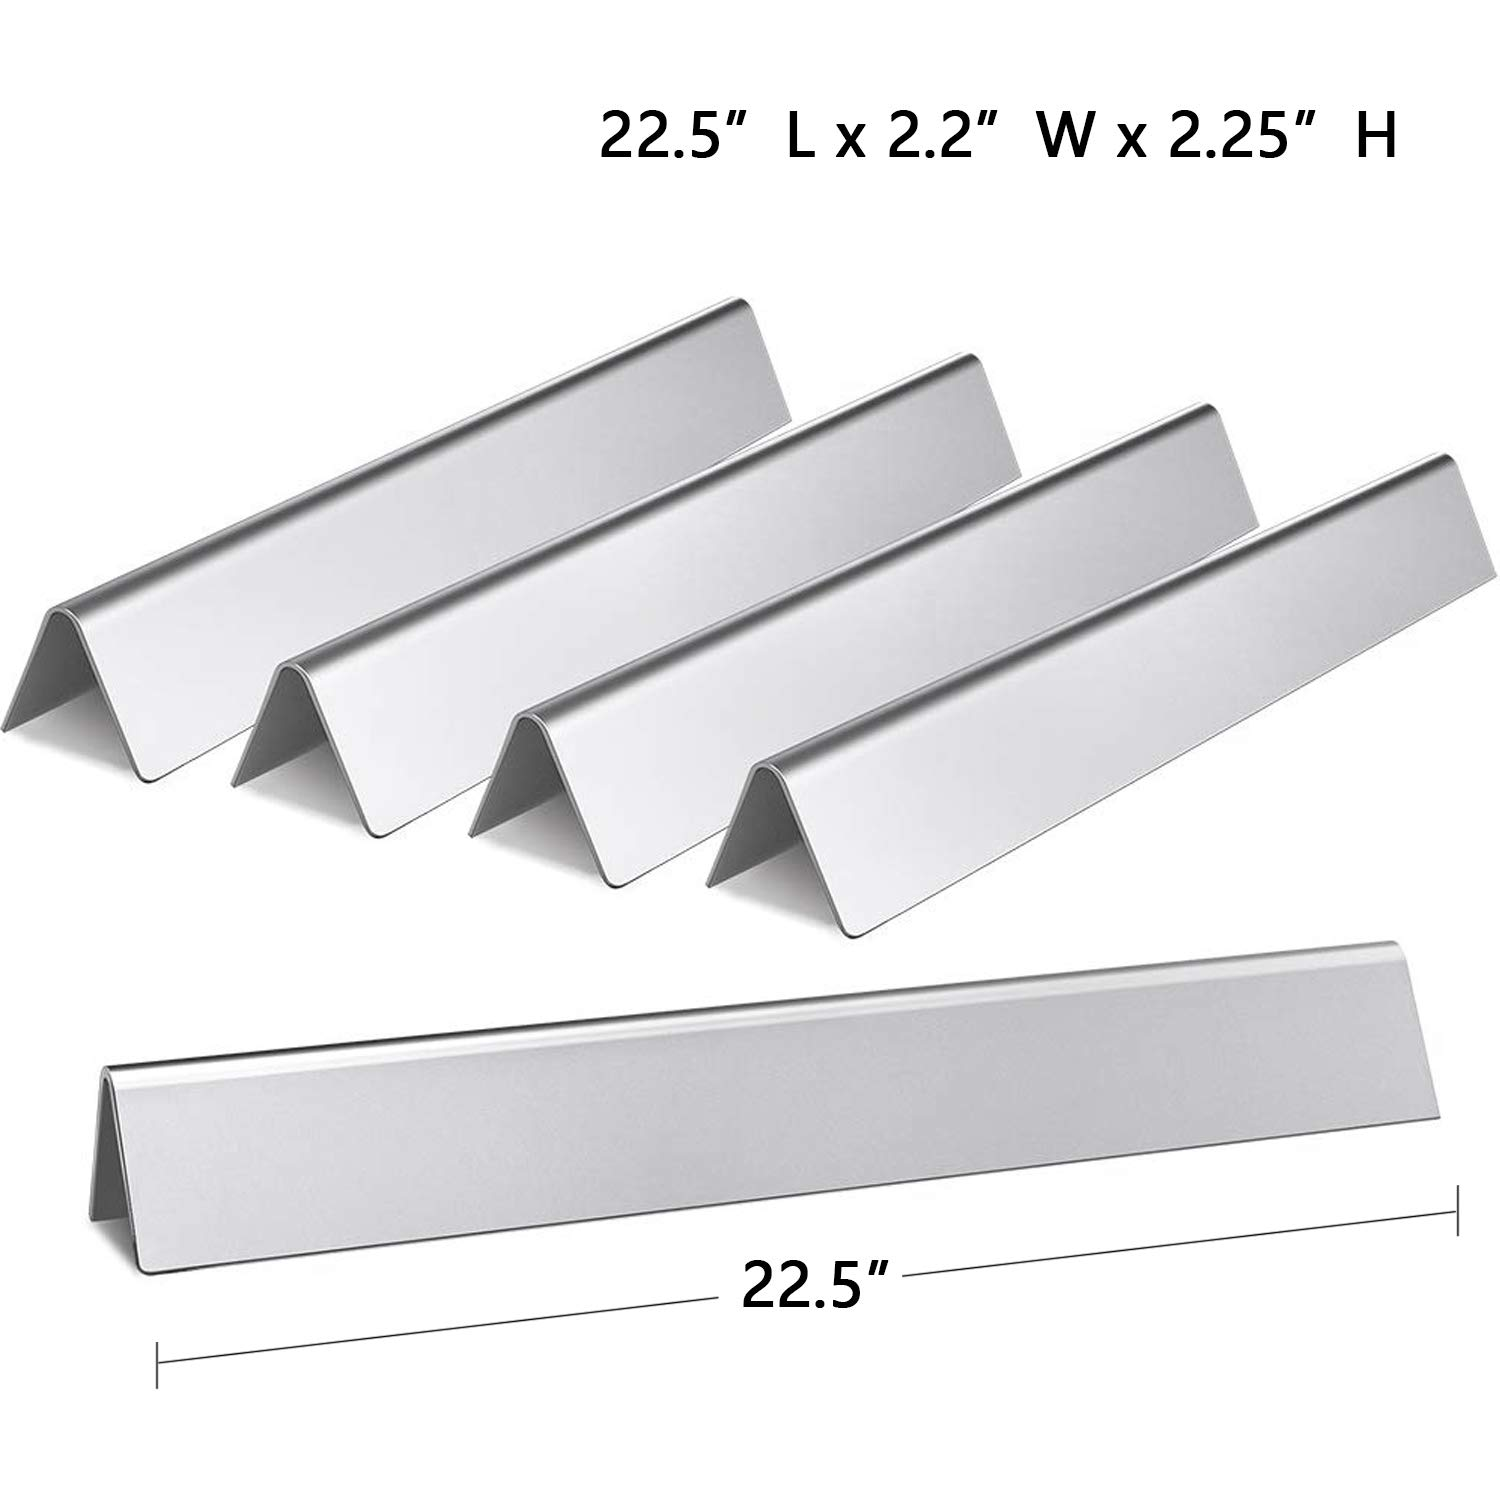 Hongso 7537 22.5'' Stainless Steel Flavorizer Bars for Weber Spirit E-310 E-320 (With Side-Mounted Controls), Spirit 700, Genesis Silver B/C, Genesis Platinum B/C (2005+) Gas Grill, 7536 65903 Set of 5 by Hongso